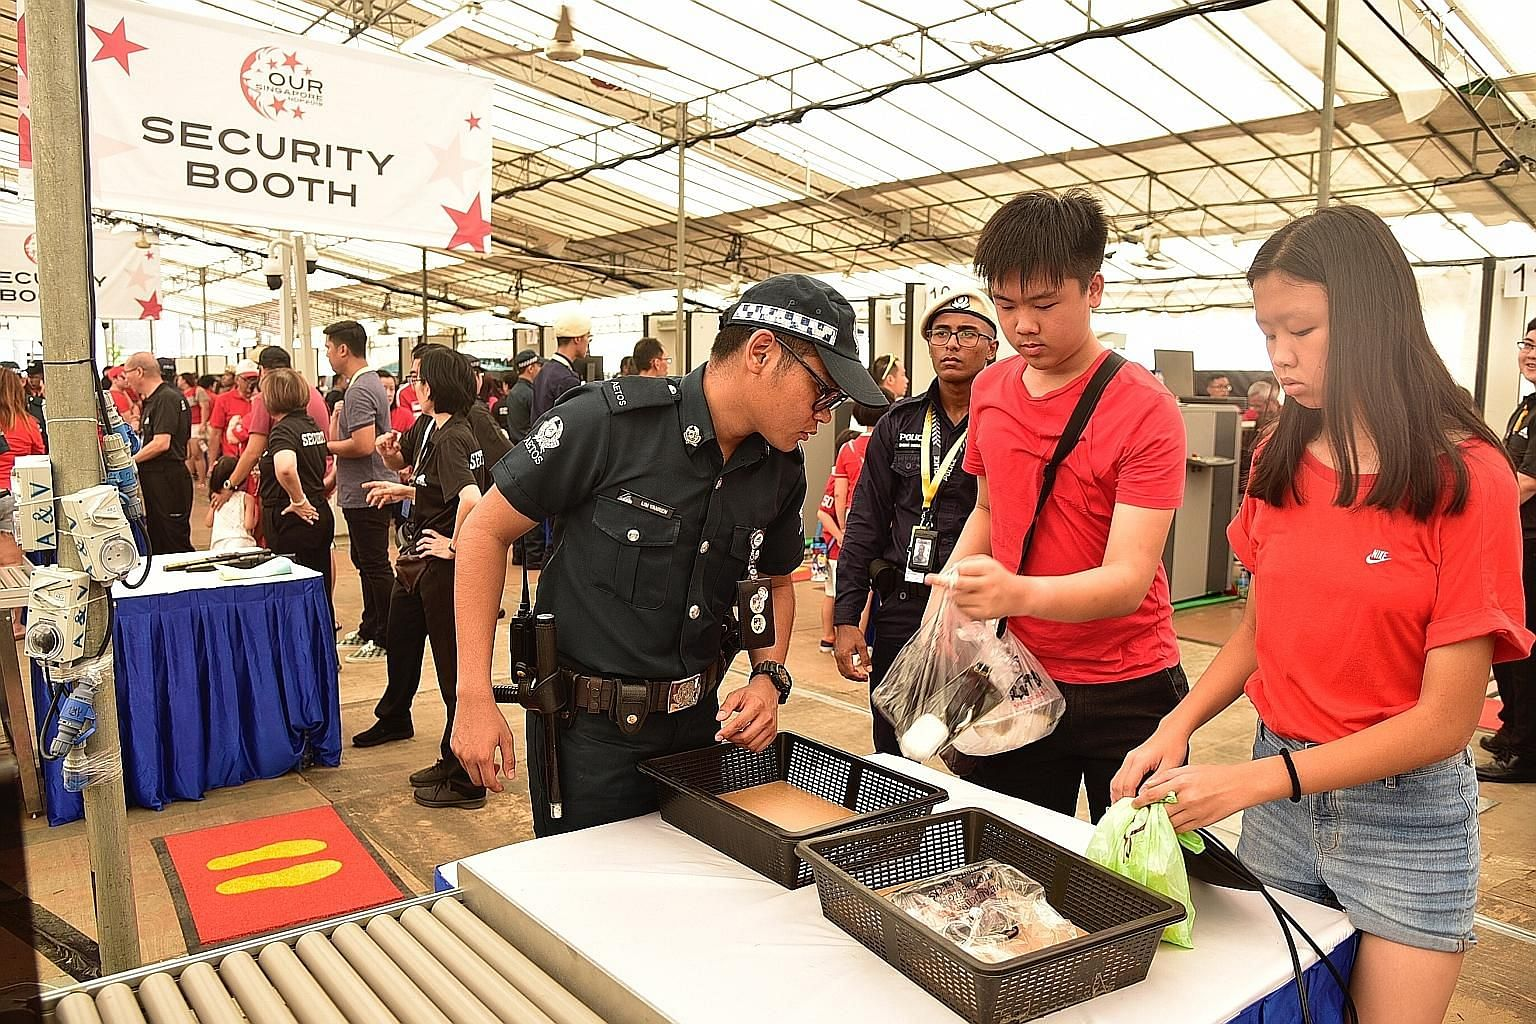 People attending this year's National Day Parade preview at the Padang yesterday having their belongings checked. Security checks will be carried out on everyone entering the venue, including using walk-through metal detectors. Personal belongings wi